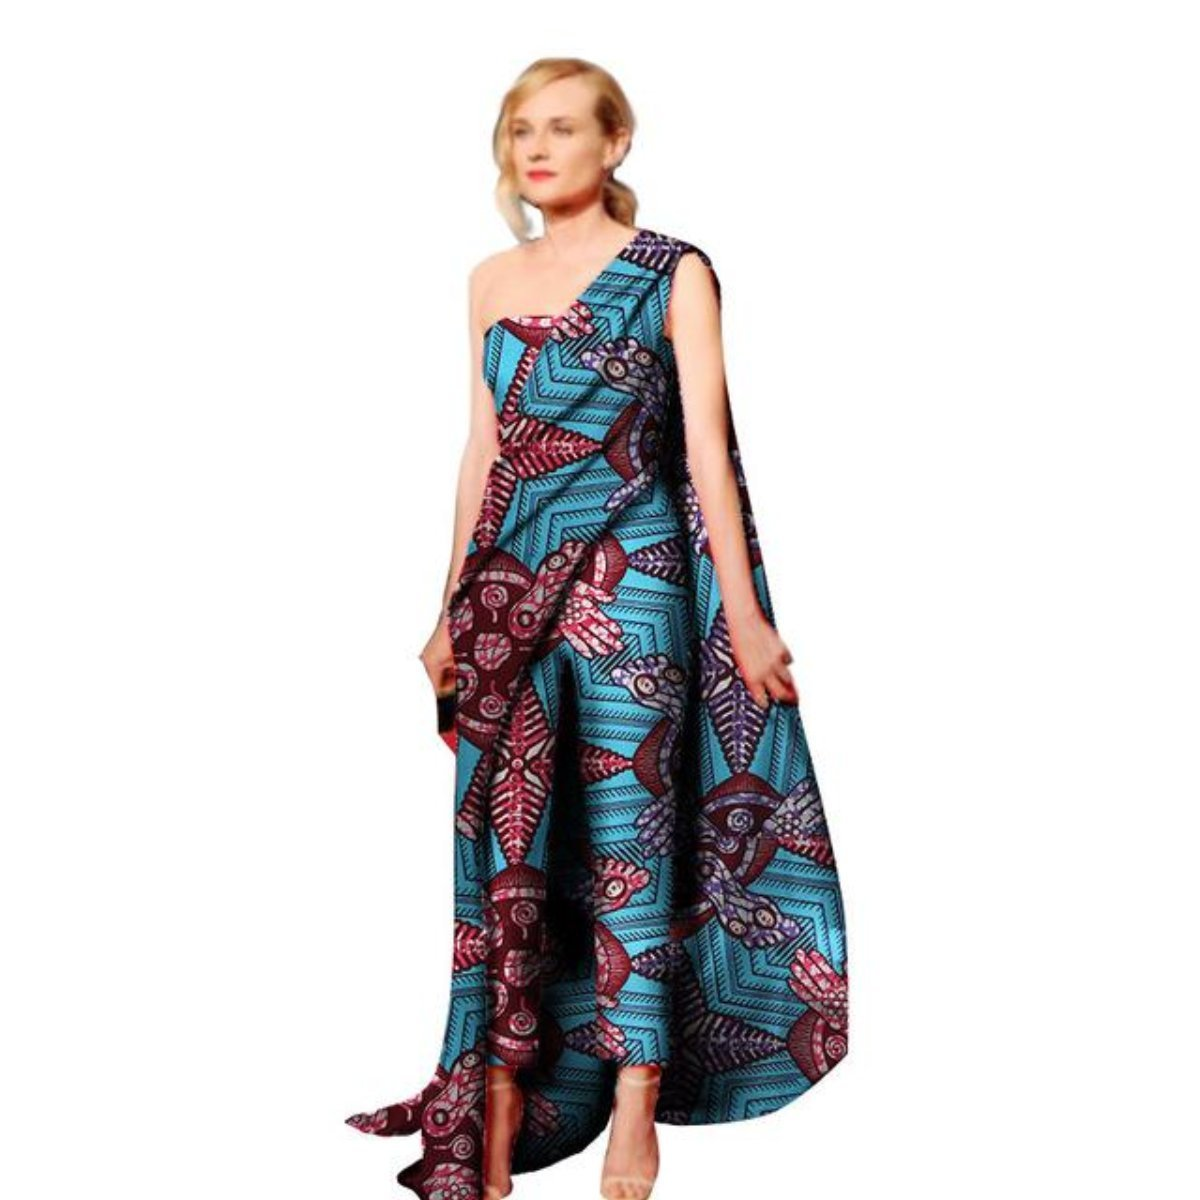 e87001f45ba06 Amazon.com: African Clothing For Women Kitenge Cotton Wax Print Romper  Jumpsuit: Clothing